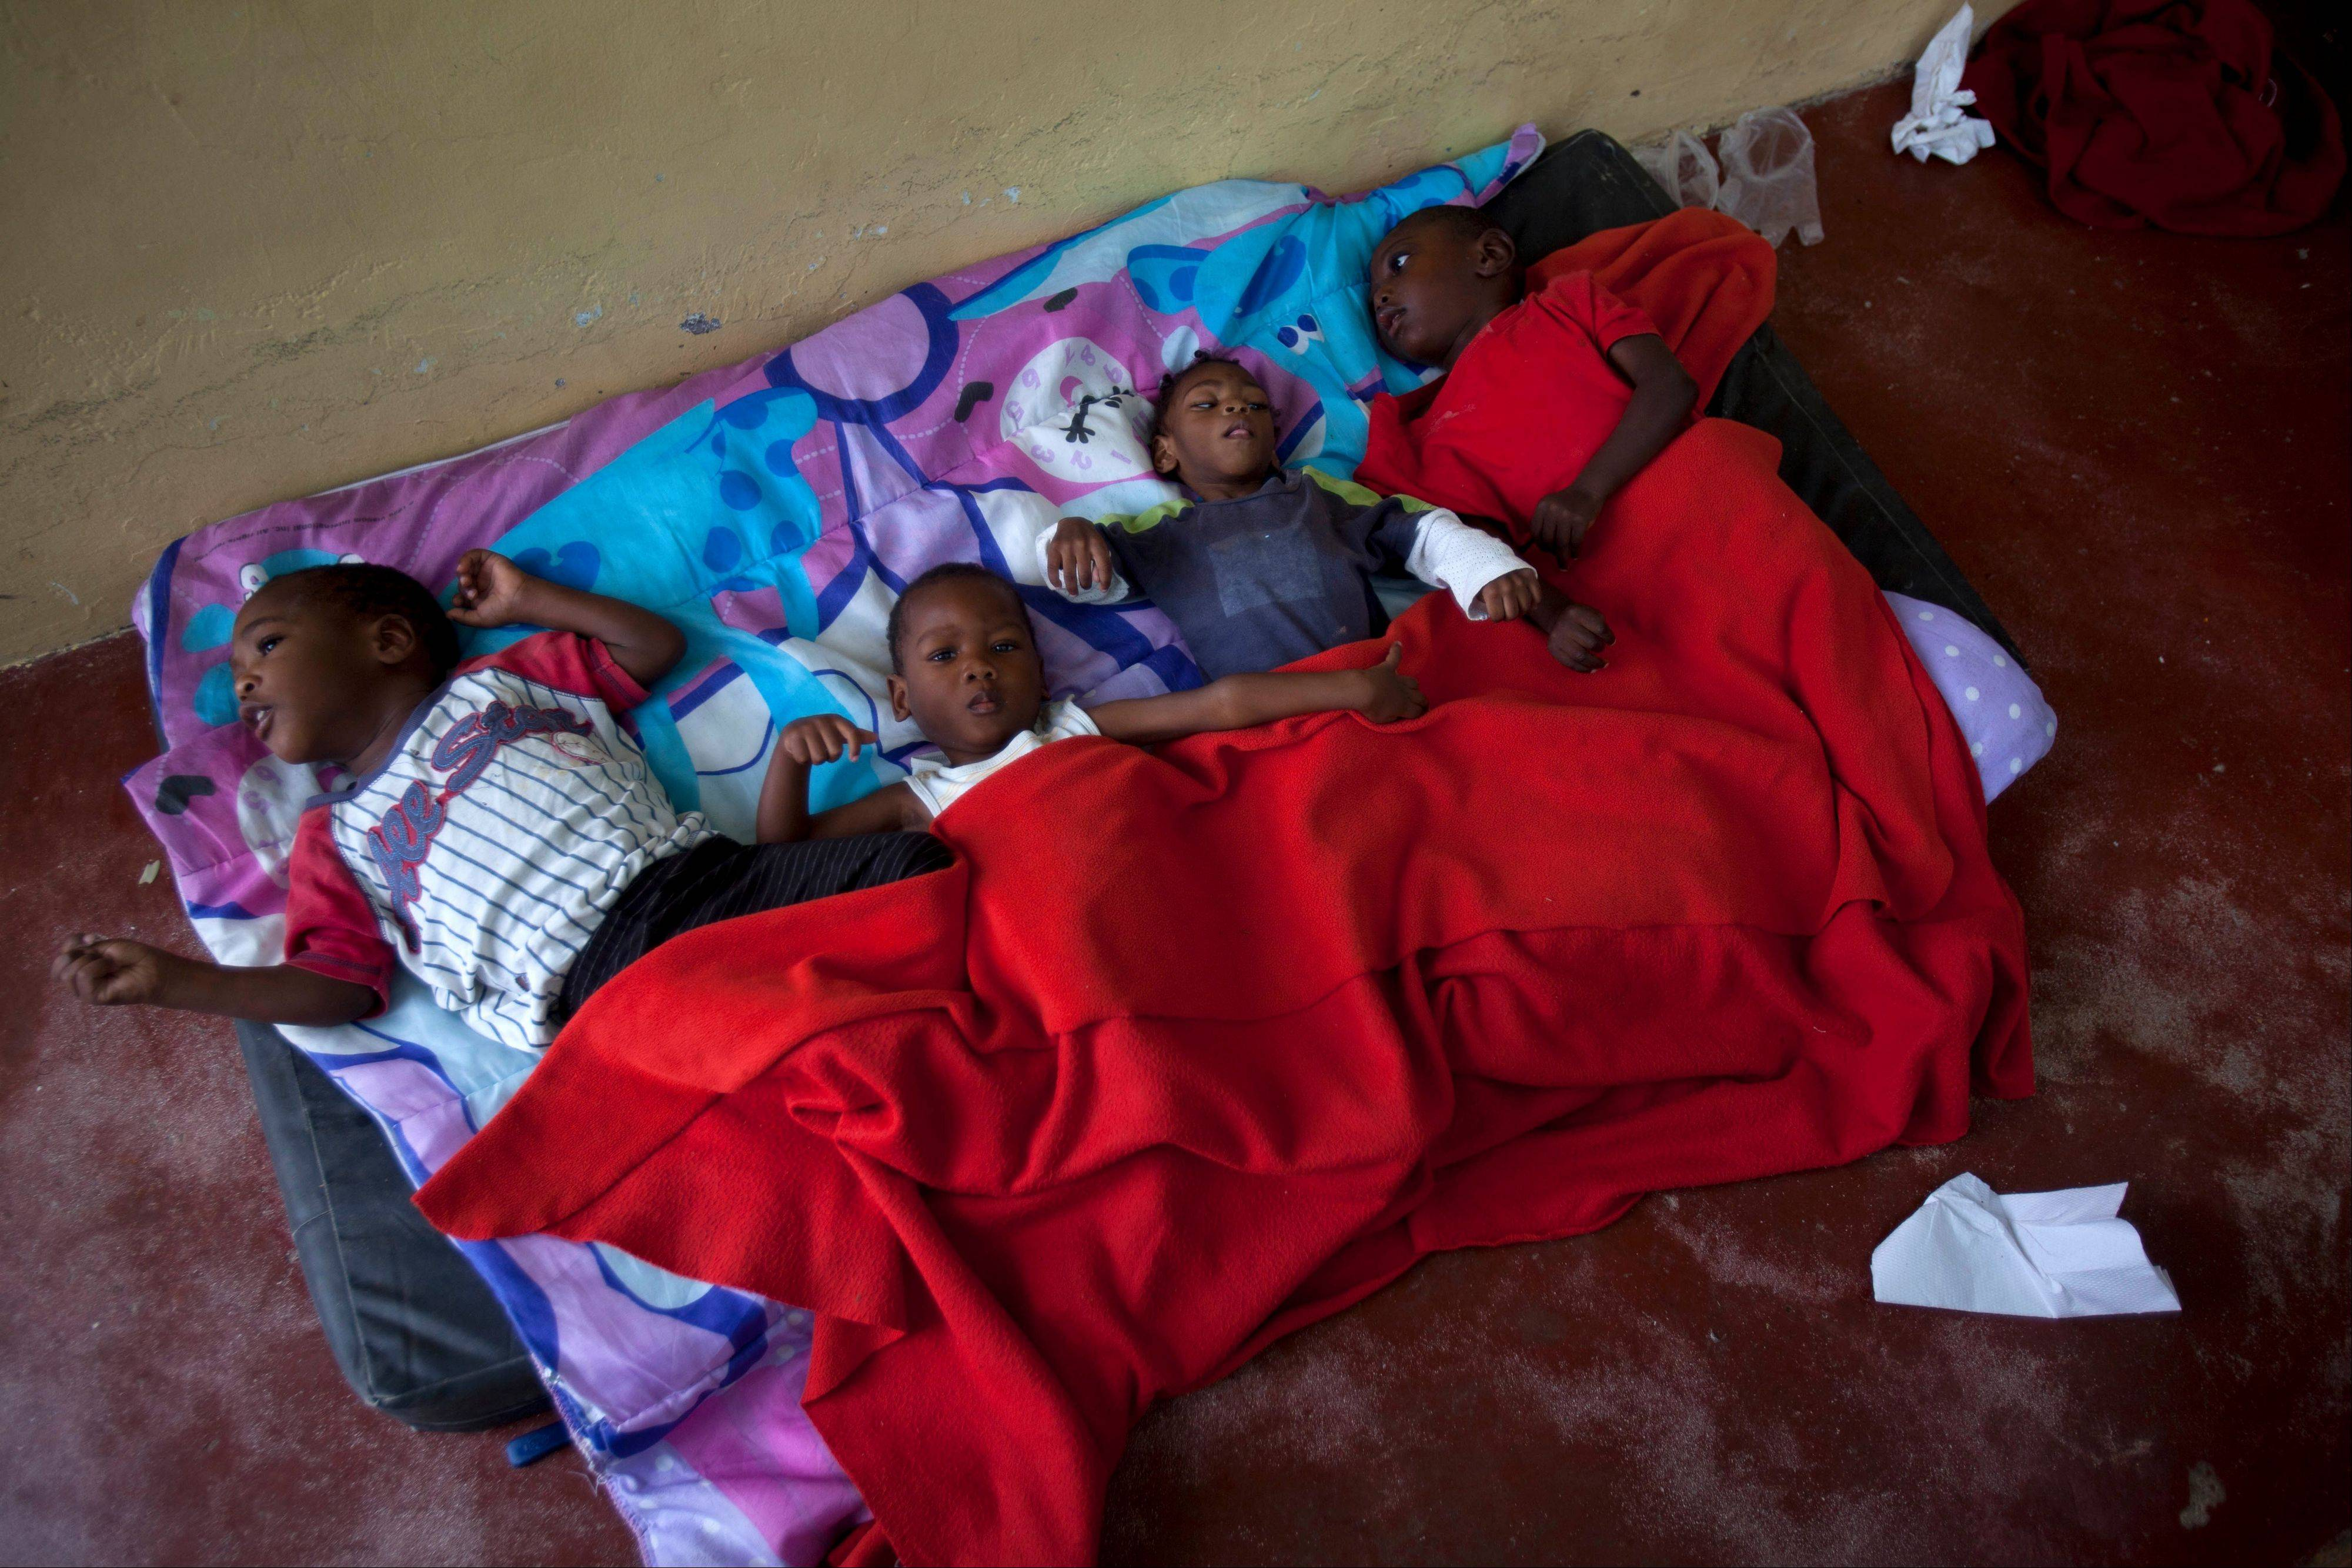 Children lay on a worn mattress placed on the floor of the U.S.-based Church of Bible Understanding orphanage in Kenscoff, Haiti. The orphanage is run by a Christian missionary group funded by the Olde Good Things antique store on Manhattan's Upper West Side.